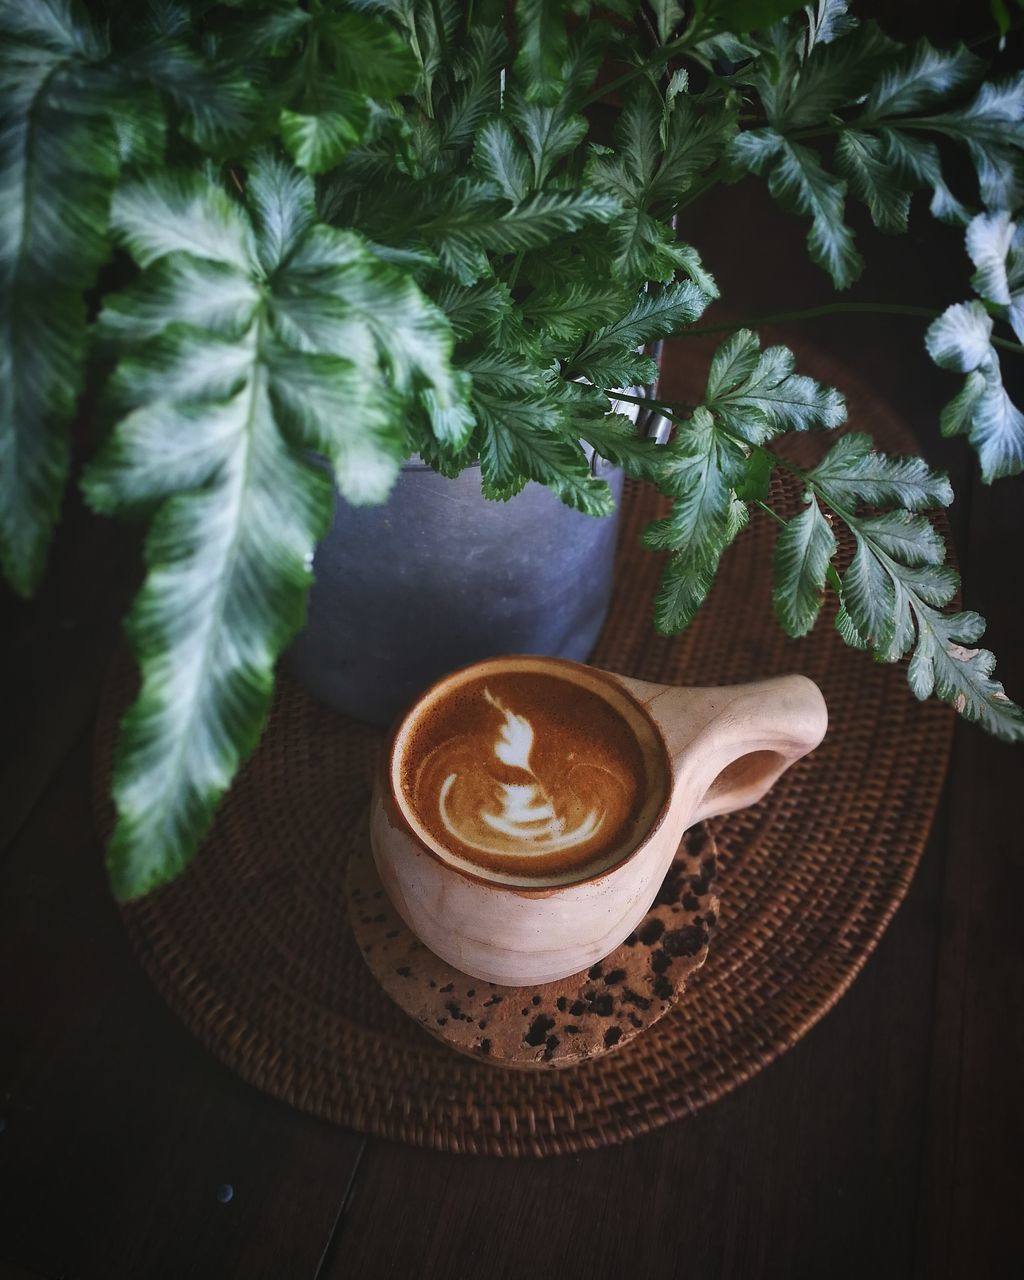 COFFEE CUP ON TABLE AGAINST PLANTS